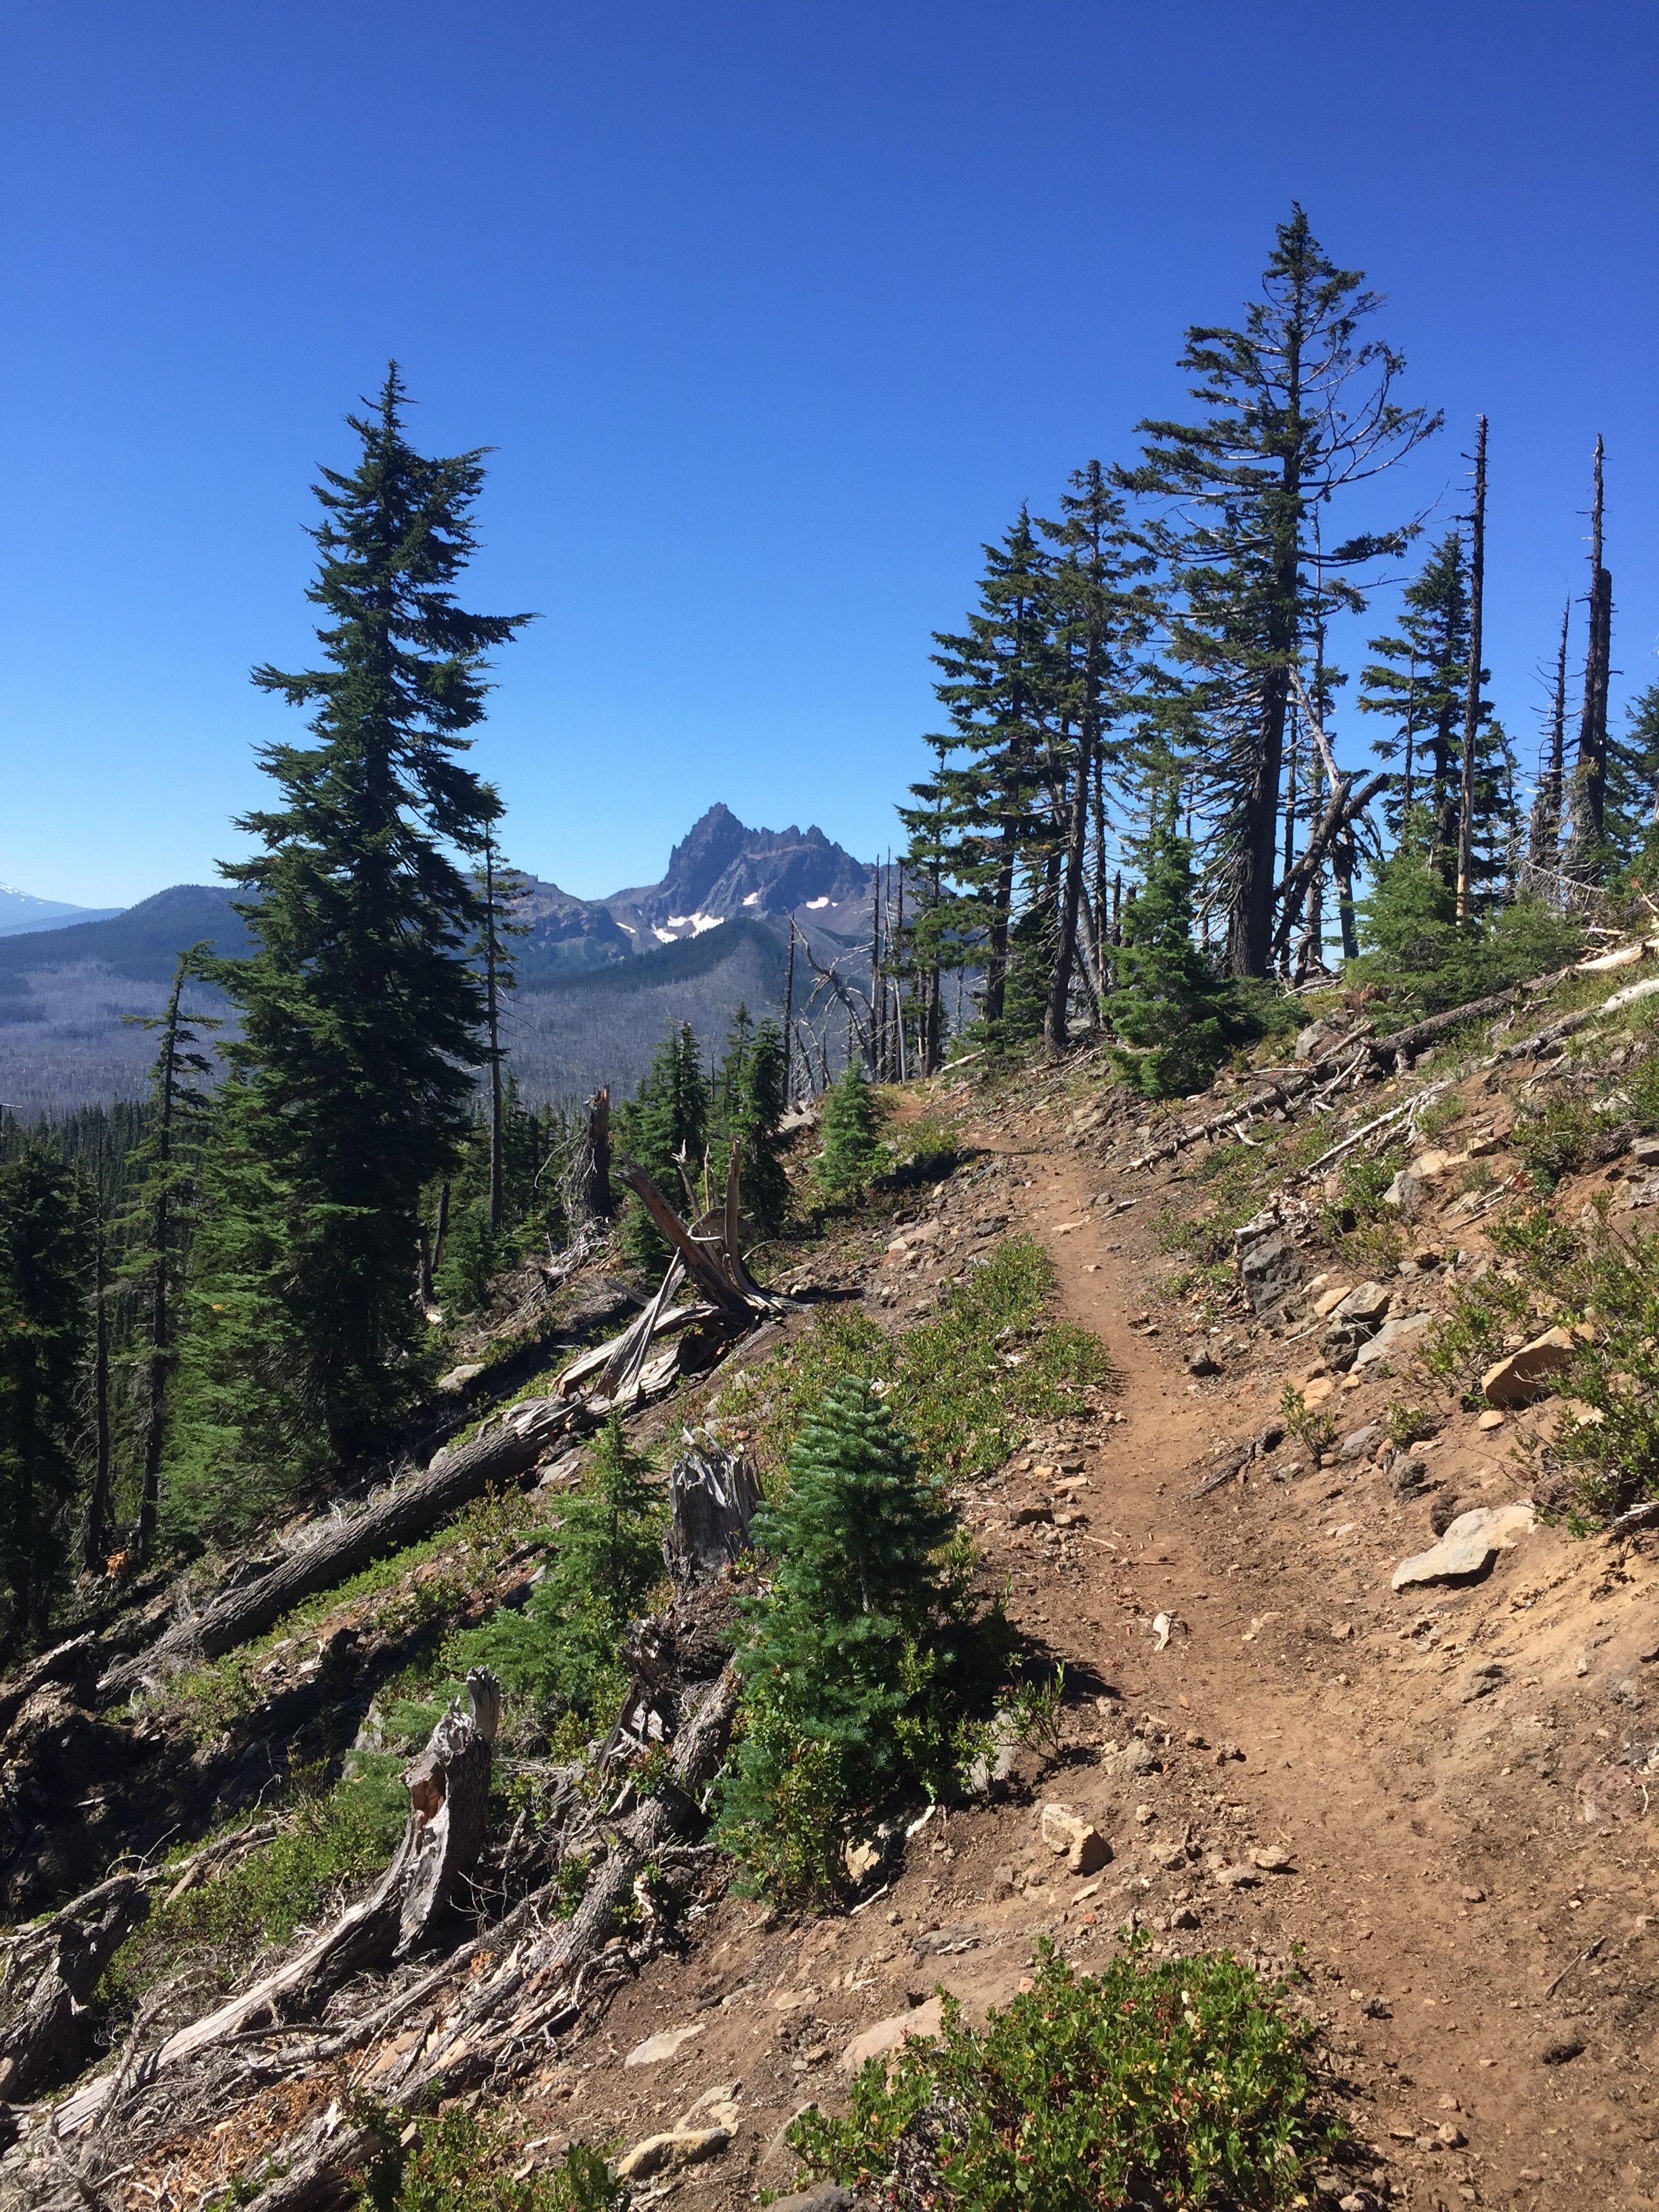 Our first clear view of 3-Fingered Jack comes after we leave Rockpile Lake